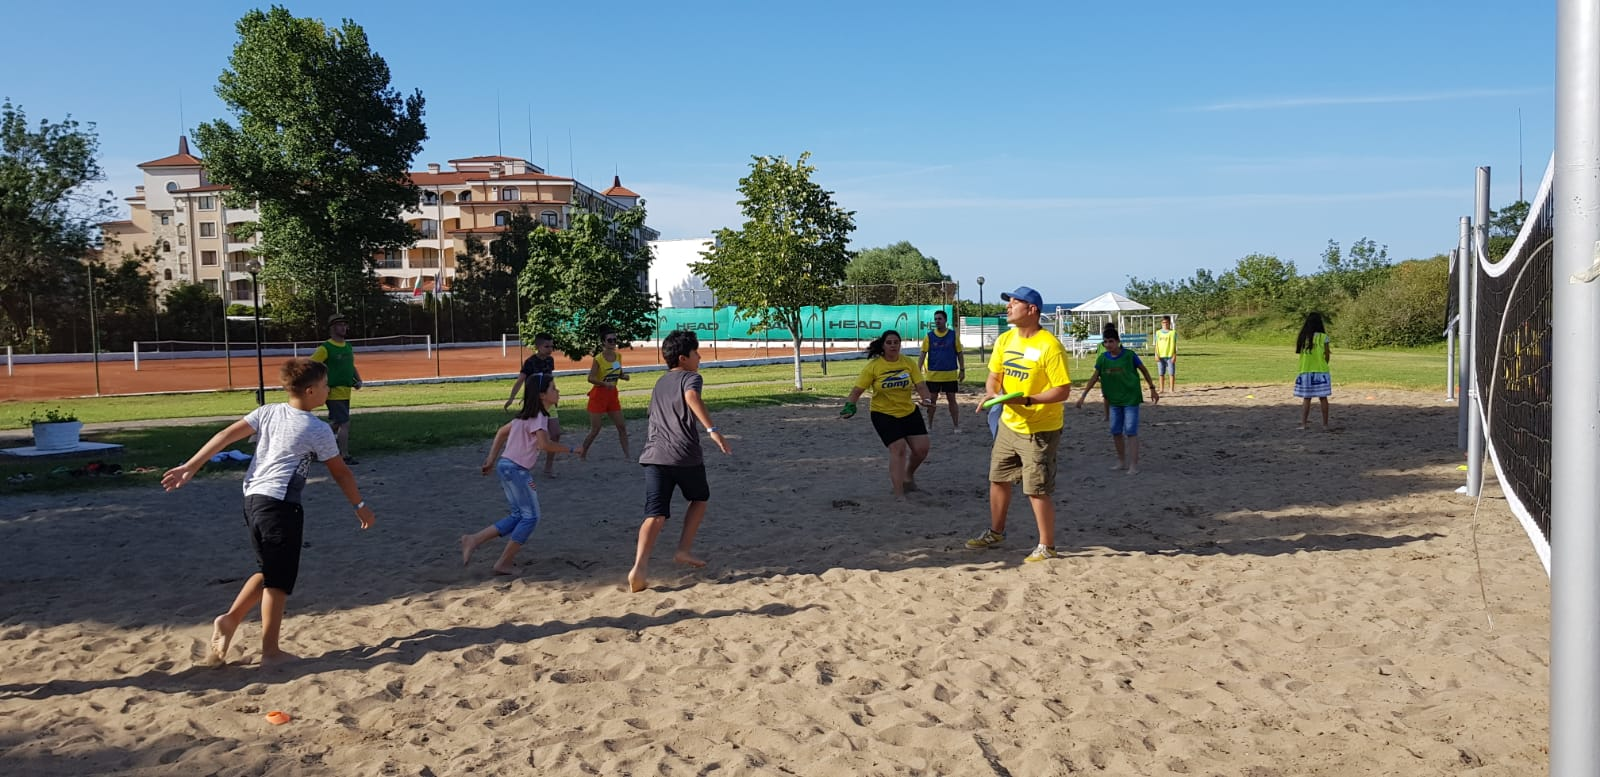 language camp for kids at seaside Z camp, Day 26 - volleyball court - children are playing